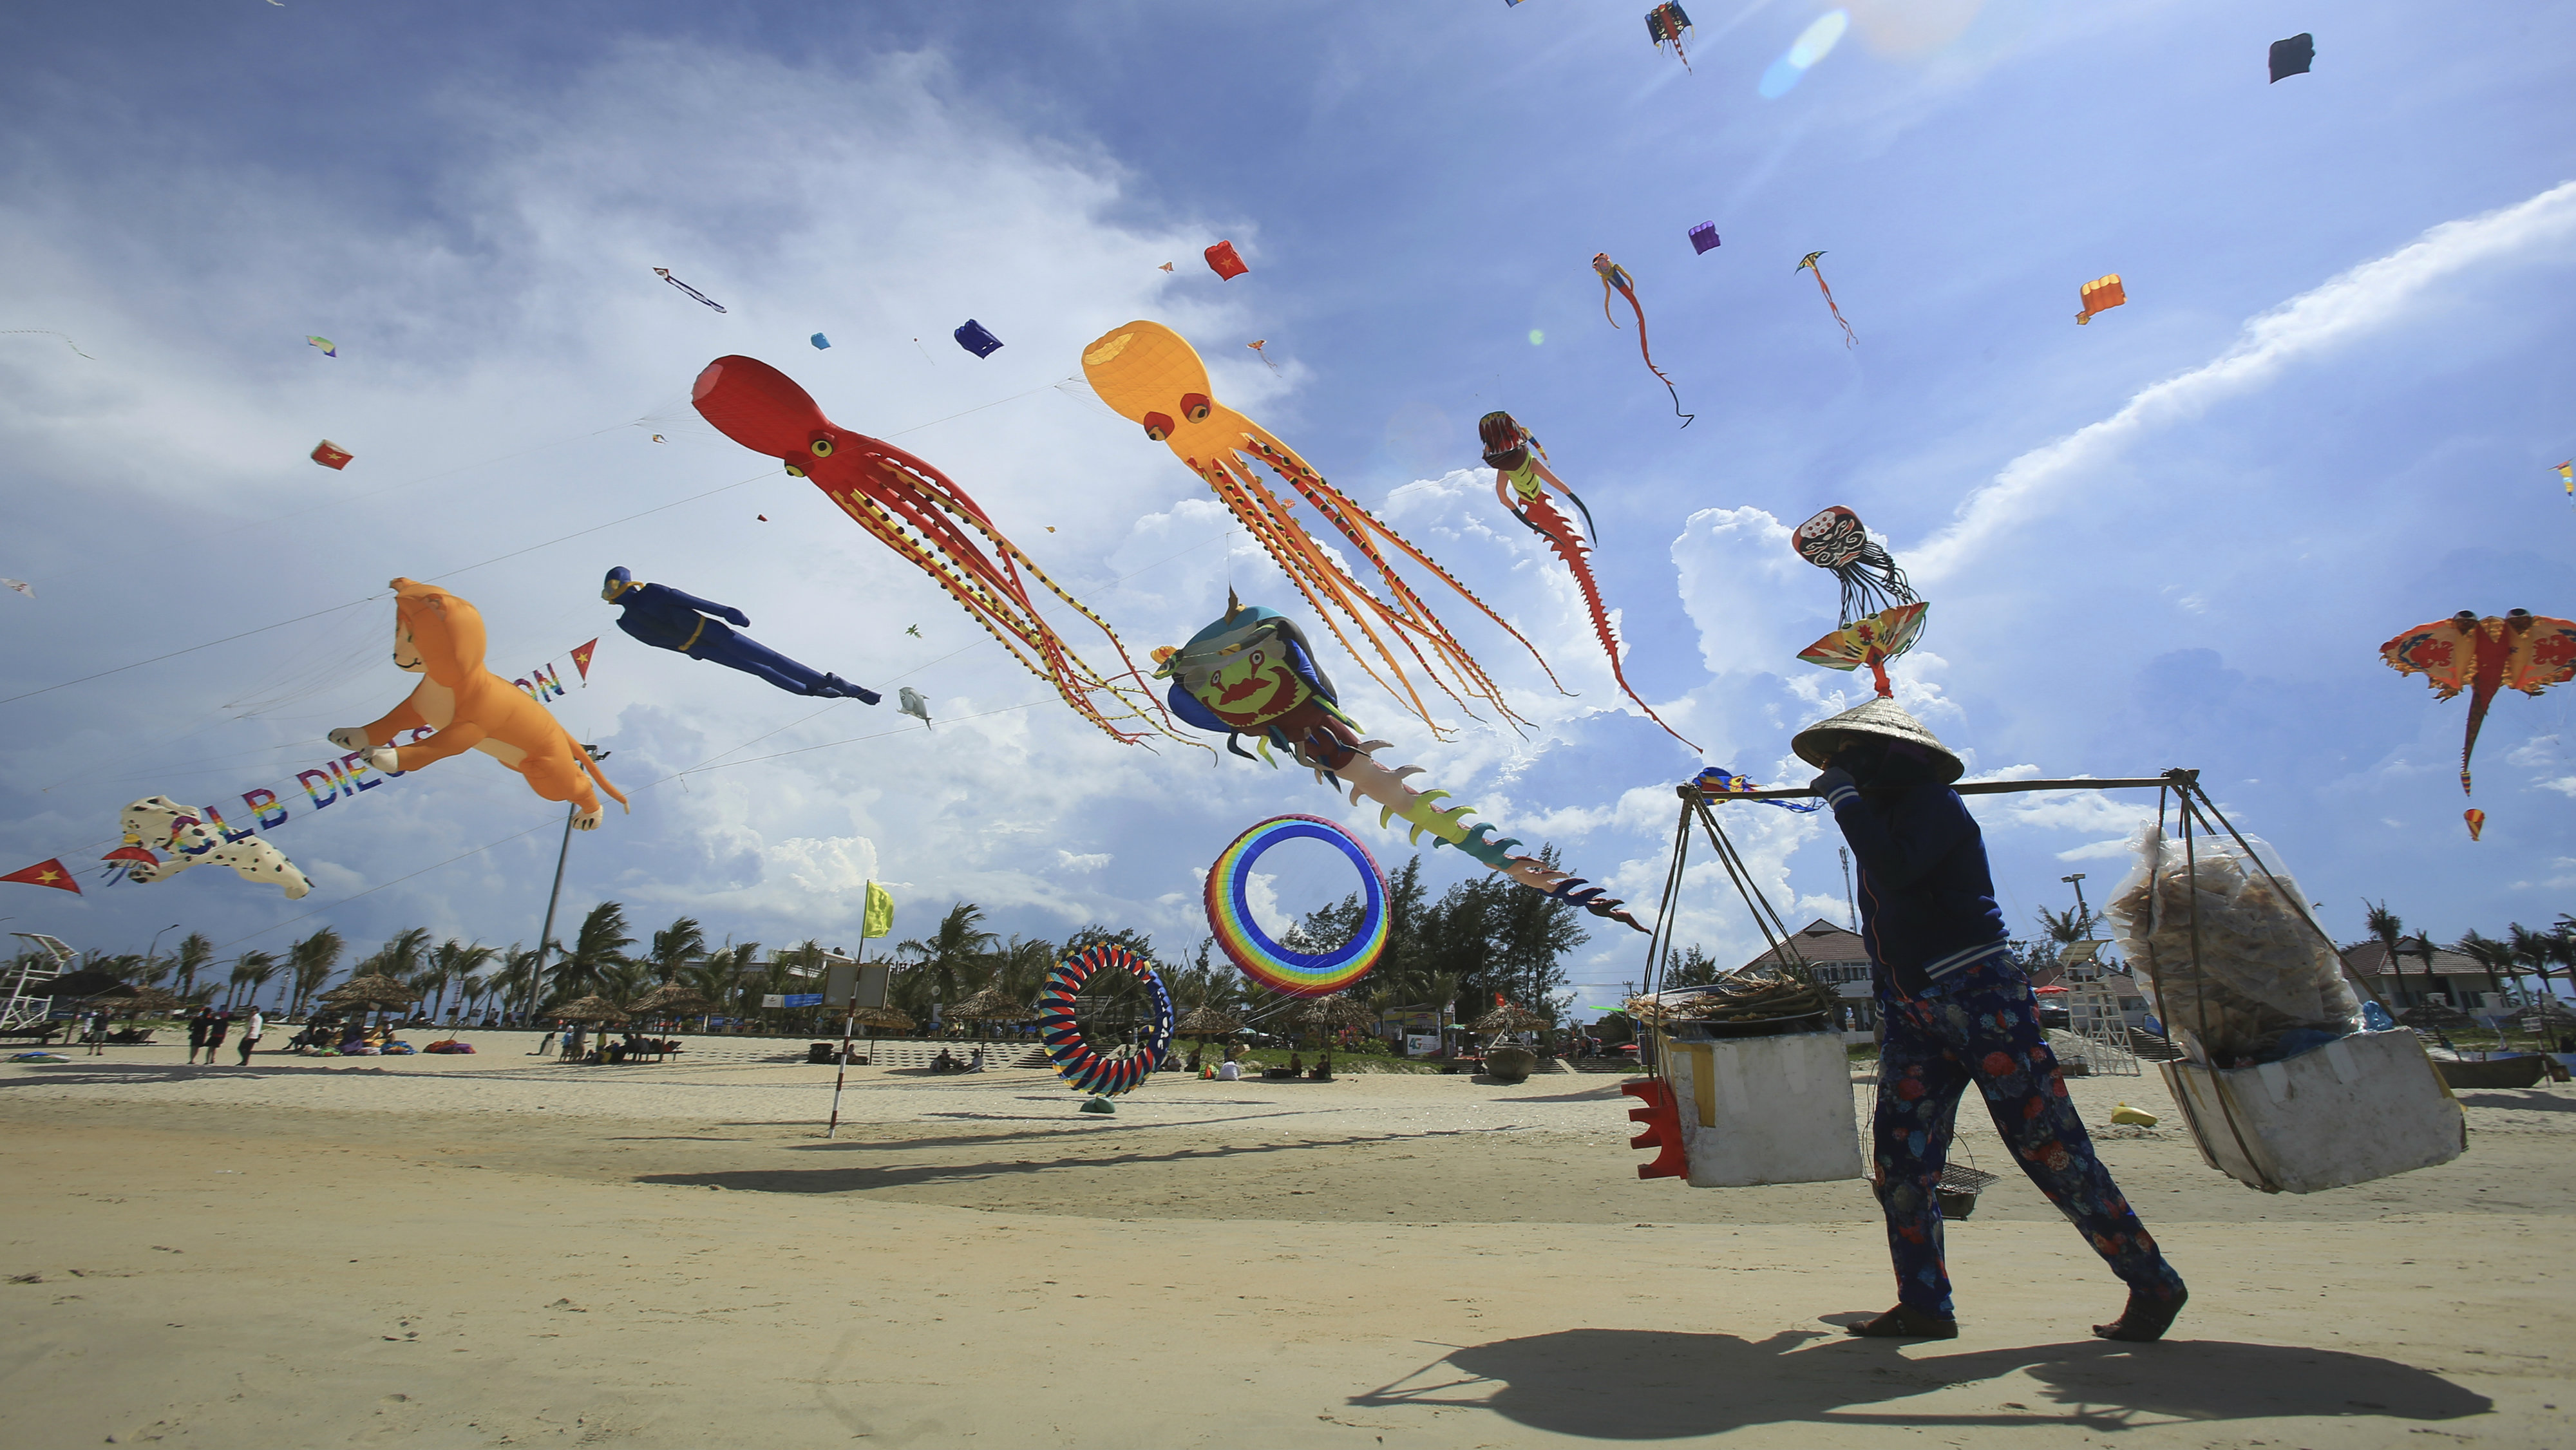 In this Sunday, June 11, 2017, photo, a food vender walks under flying kites on Tam Thanh beach during an International Kite Festival in Quang Nam province, Vietnam. Hundreds of flying giant sea creatures, animal shaped and folklore inspired kites from 20 countries were taken to the sky.